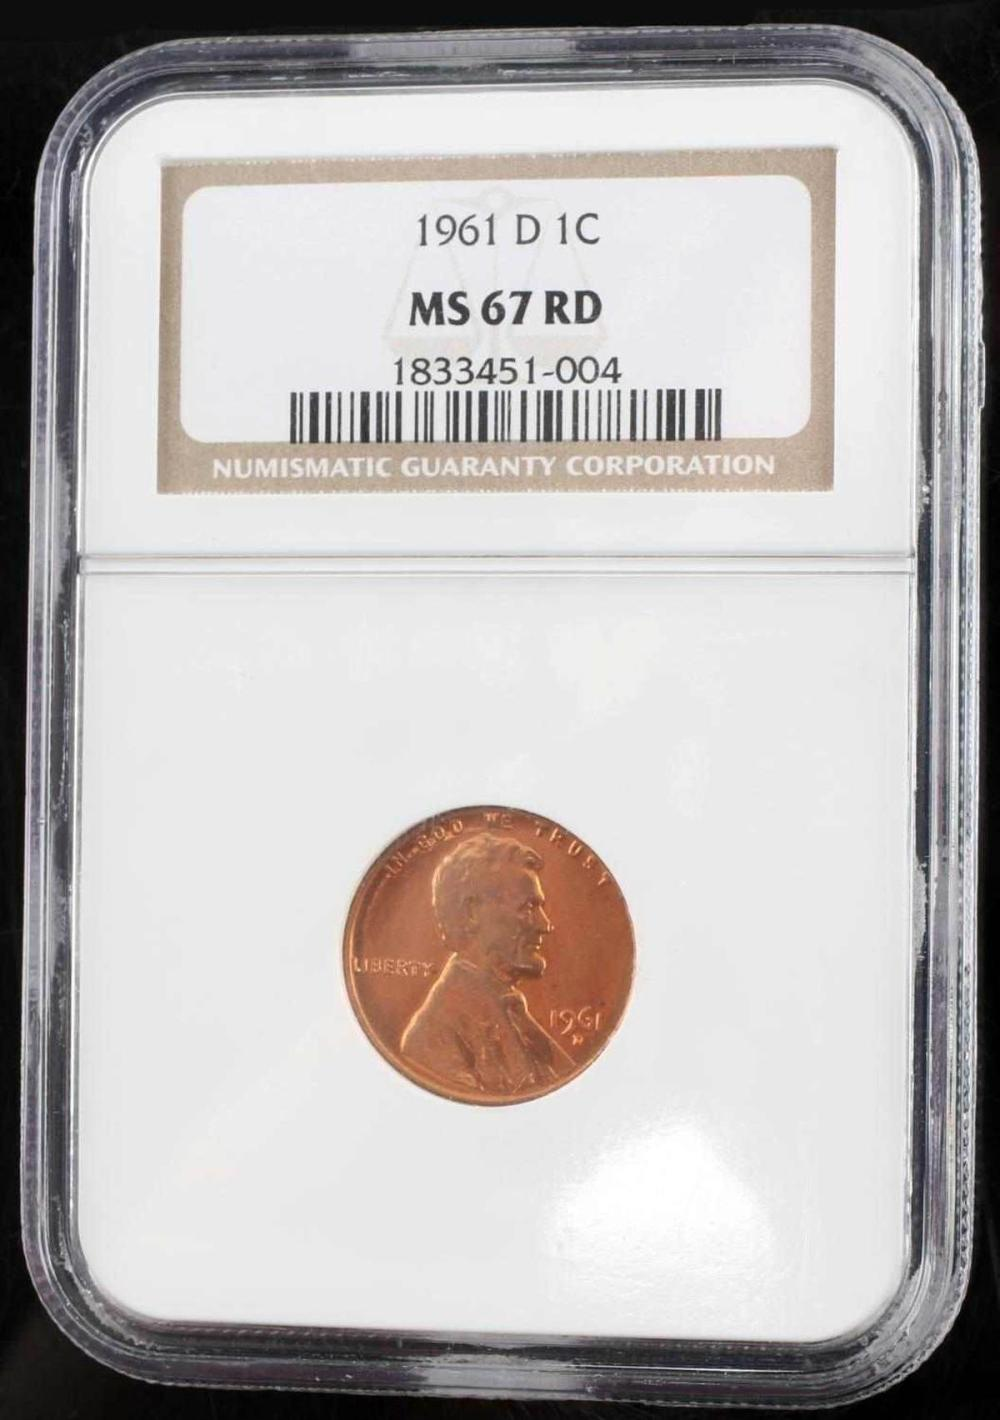 1961 D LINCOLN MEMORIAL CENT PCGS MS 67 RD